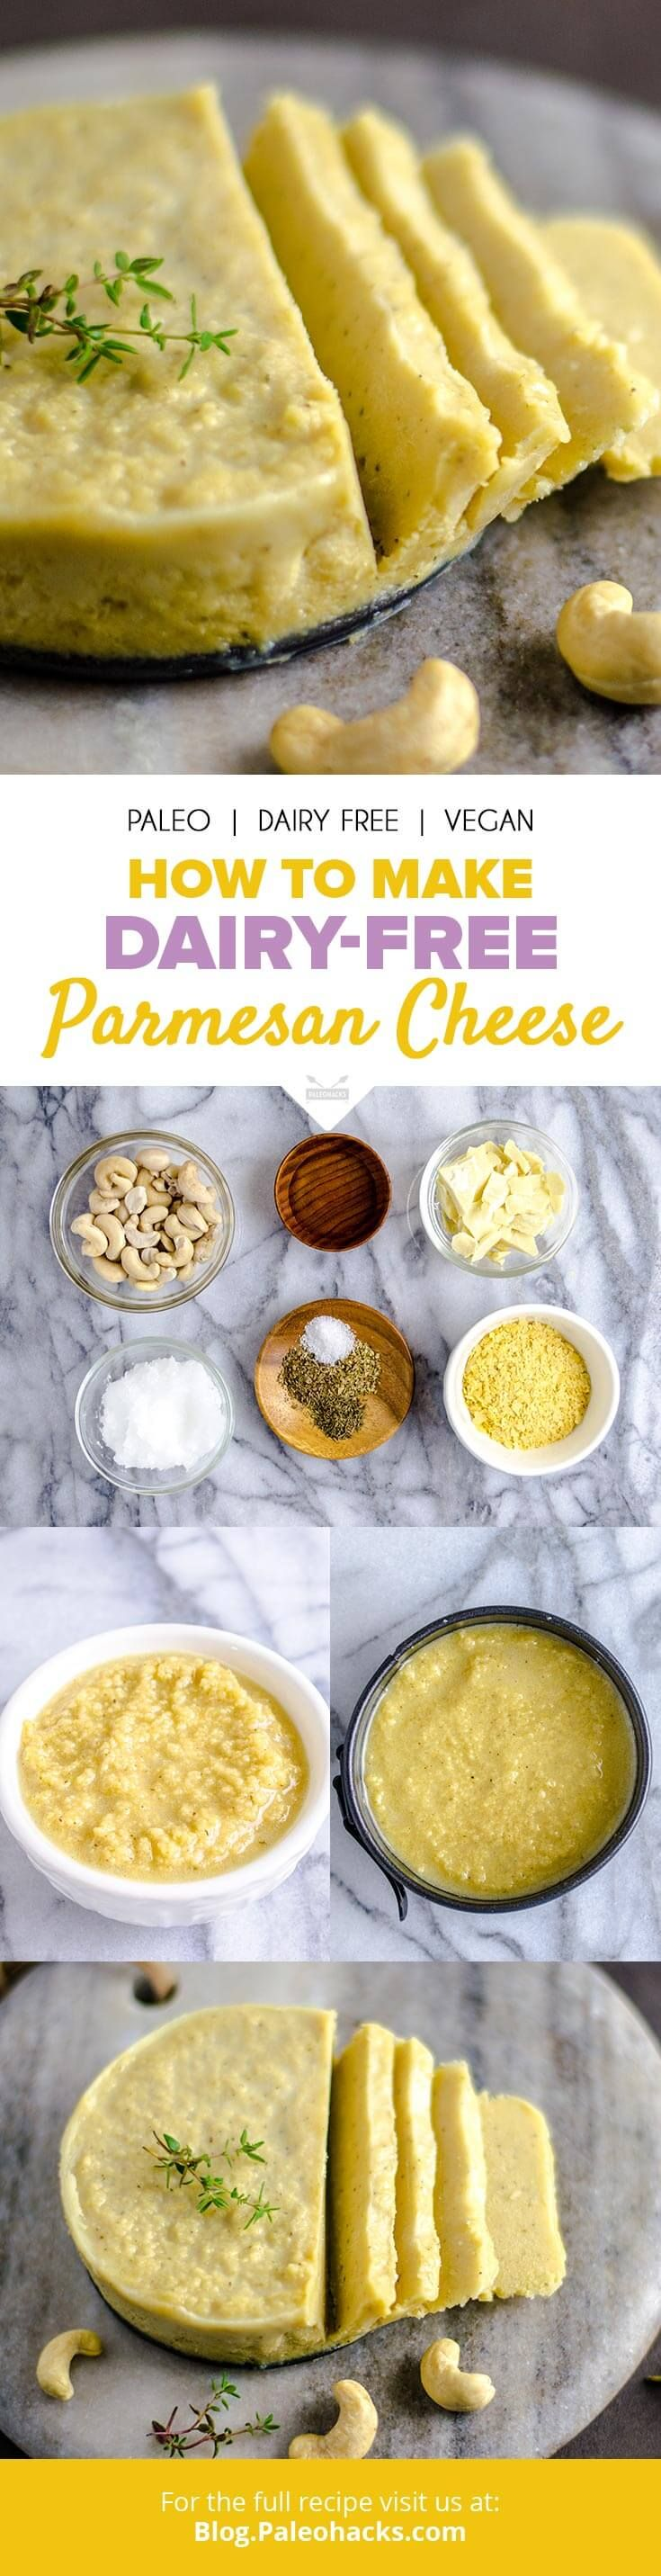 Dairy-free Parmesan cheese that's a cinch to make. Slice it on top of burgers or grate it over your favorite zoodle dish, the possibilities are endless! Get the recipe here: http://paleo.co/parmesanrcp